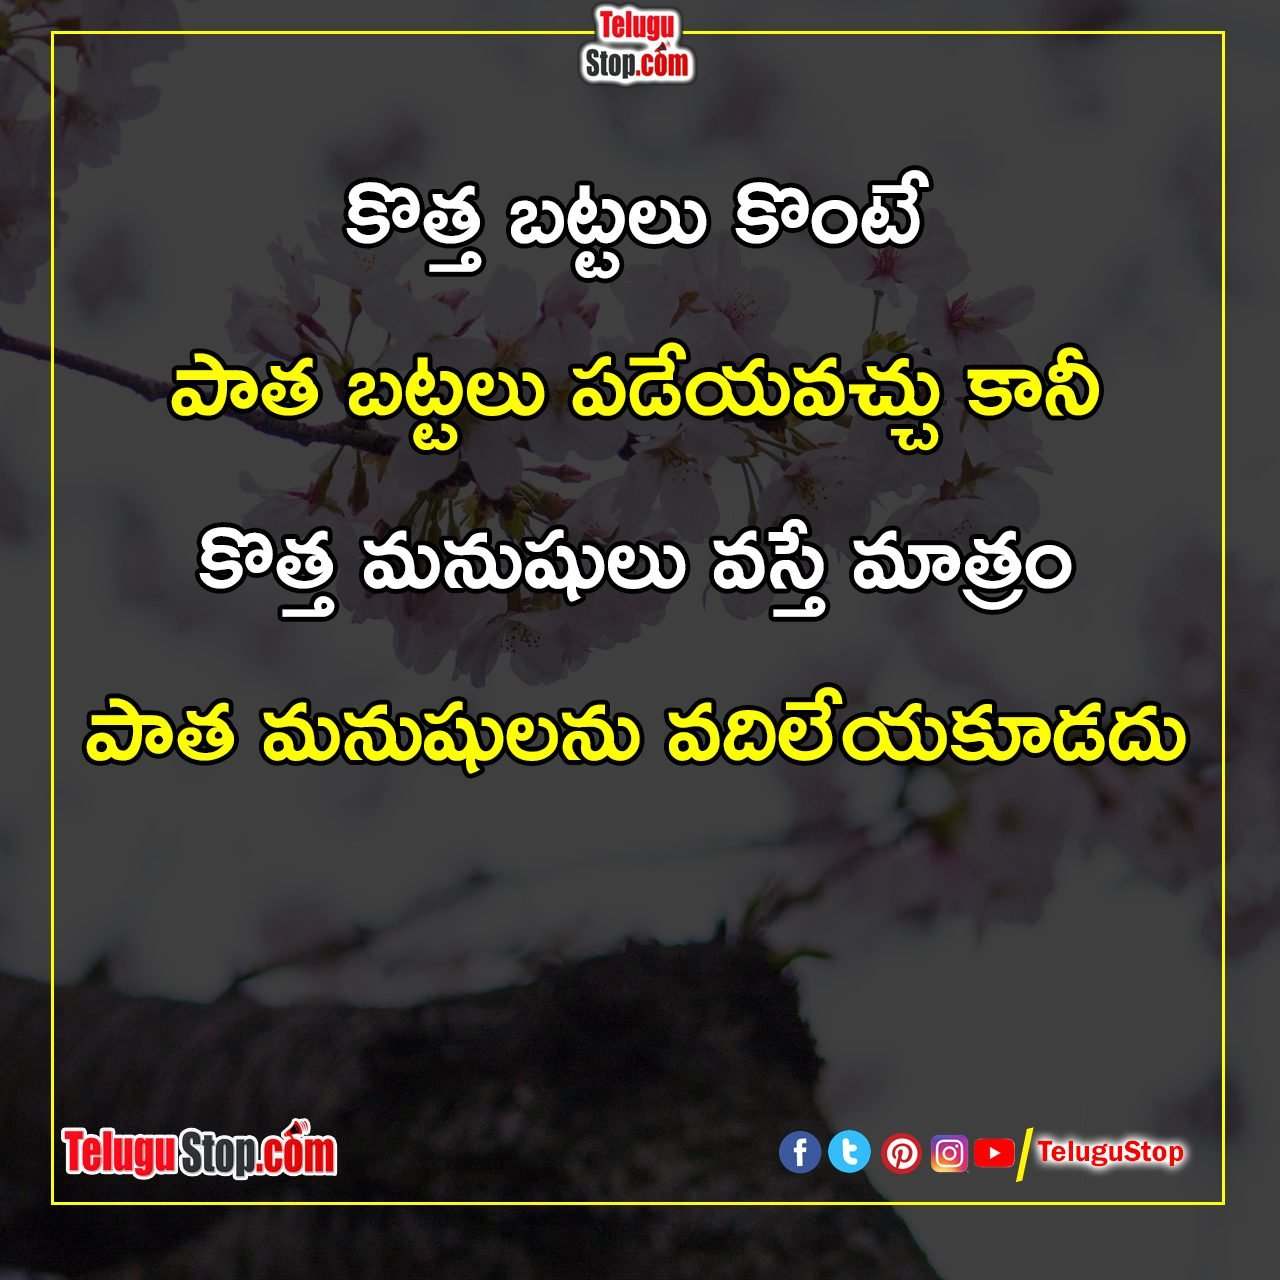 Telugu Goodness Related Inspiriational Quotes, New People Should Not Leave The Old Ones Inspiriational Quotes, Not All Human Beings Are The Same Inspiriational Quotes, Work Hard To Succeed In Life Inspiriational Quotes-Telugu Daily Quotes - Inspirational/Motivational/Love/Friendship/Good Morning Quote